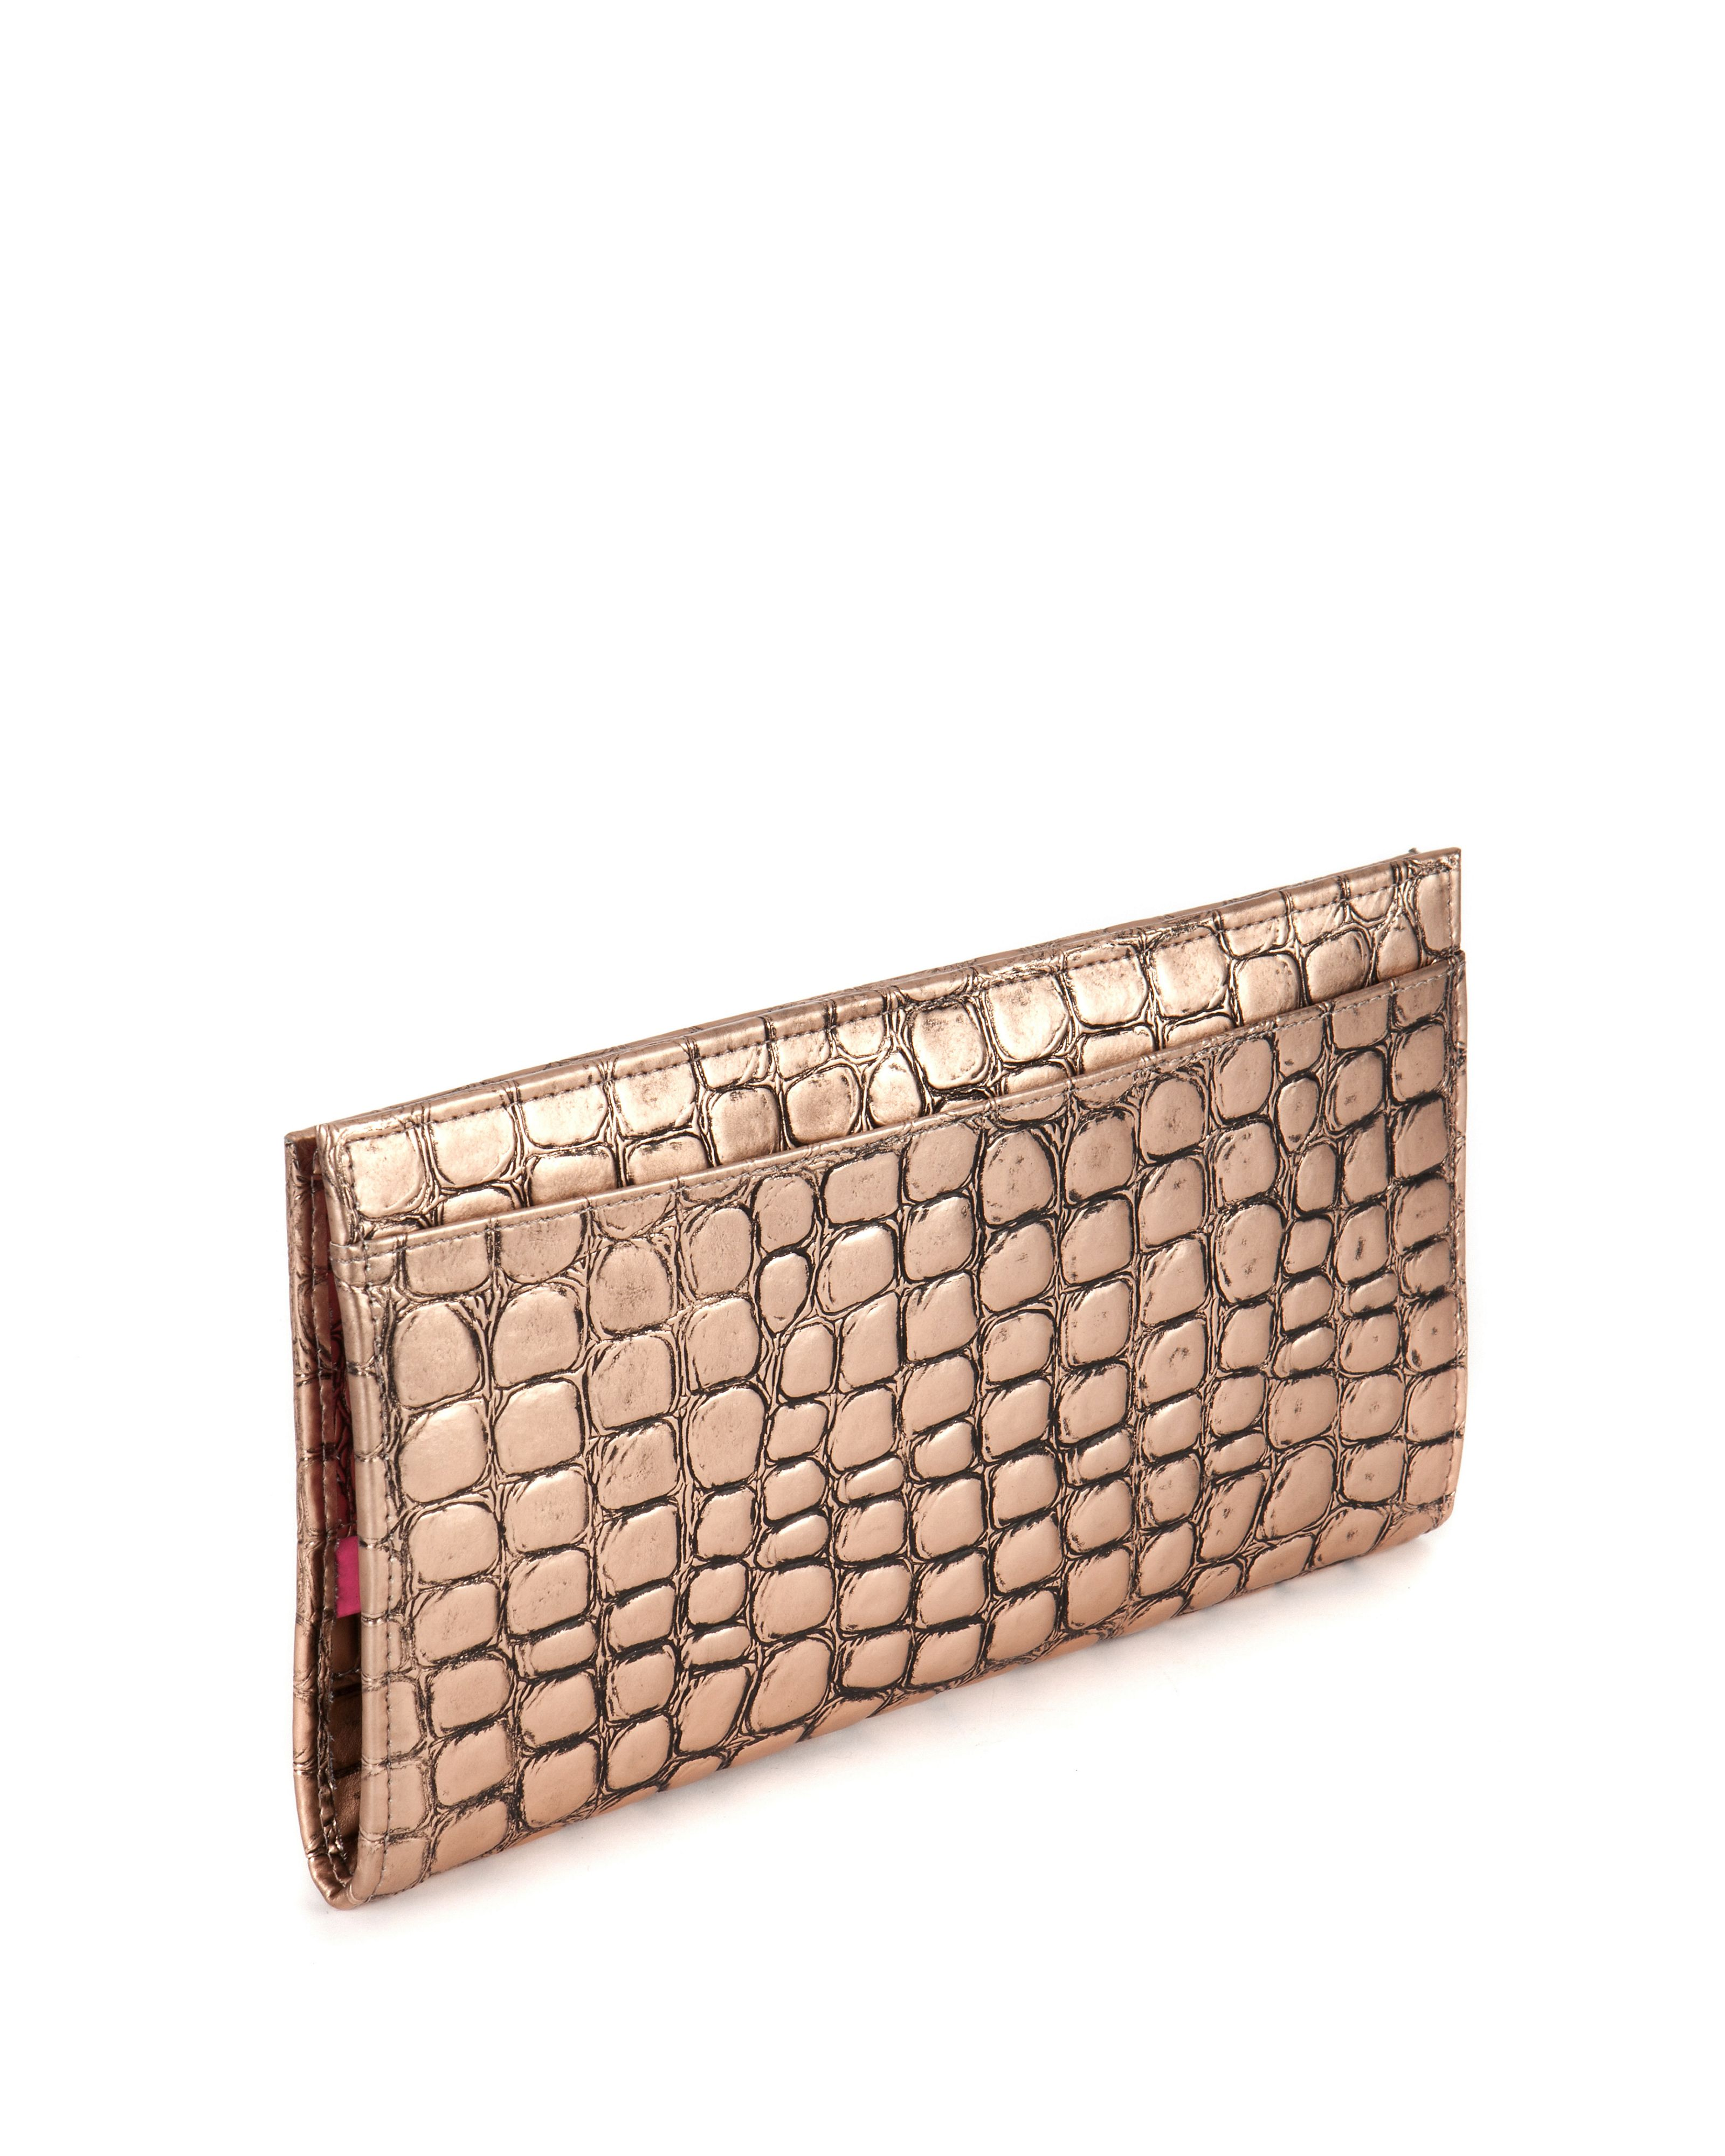 Bronbey croc effect travel purse